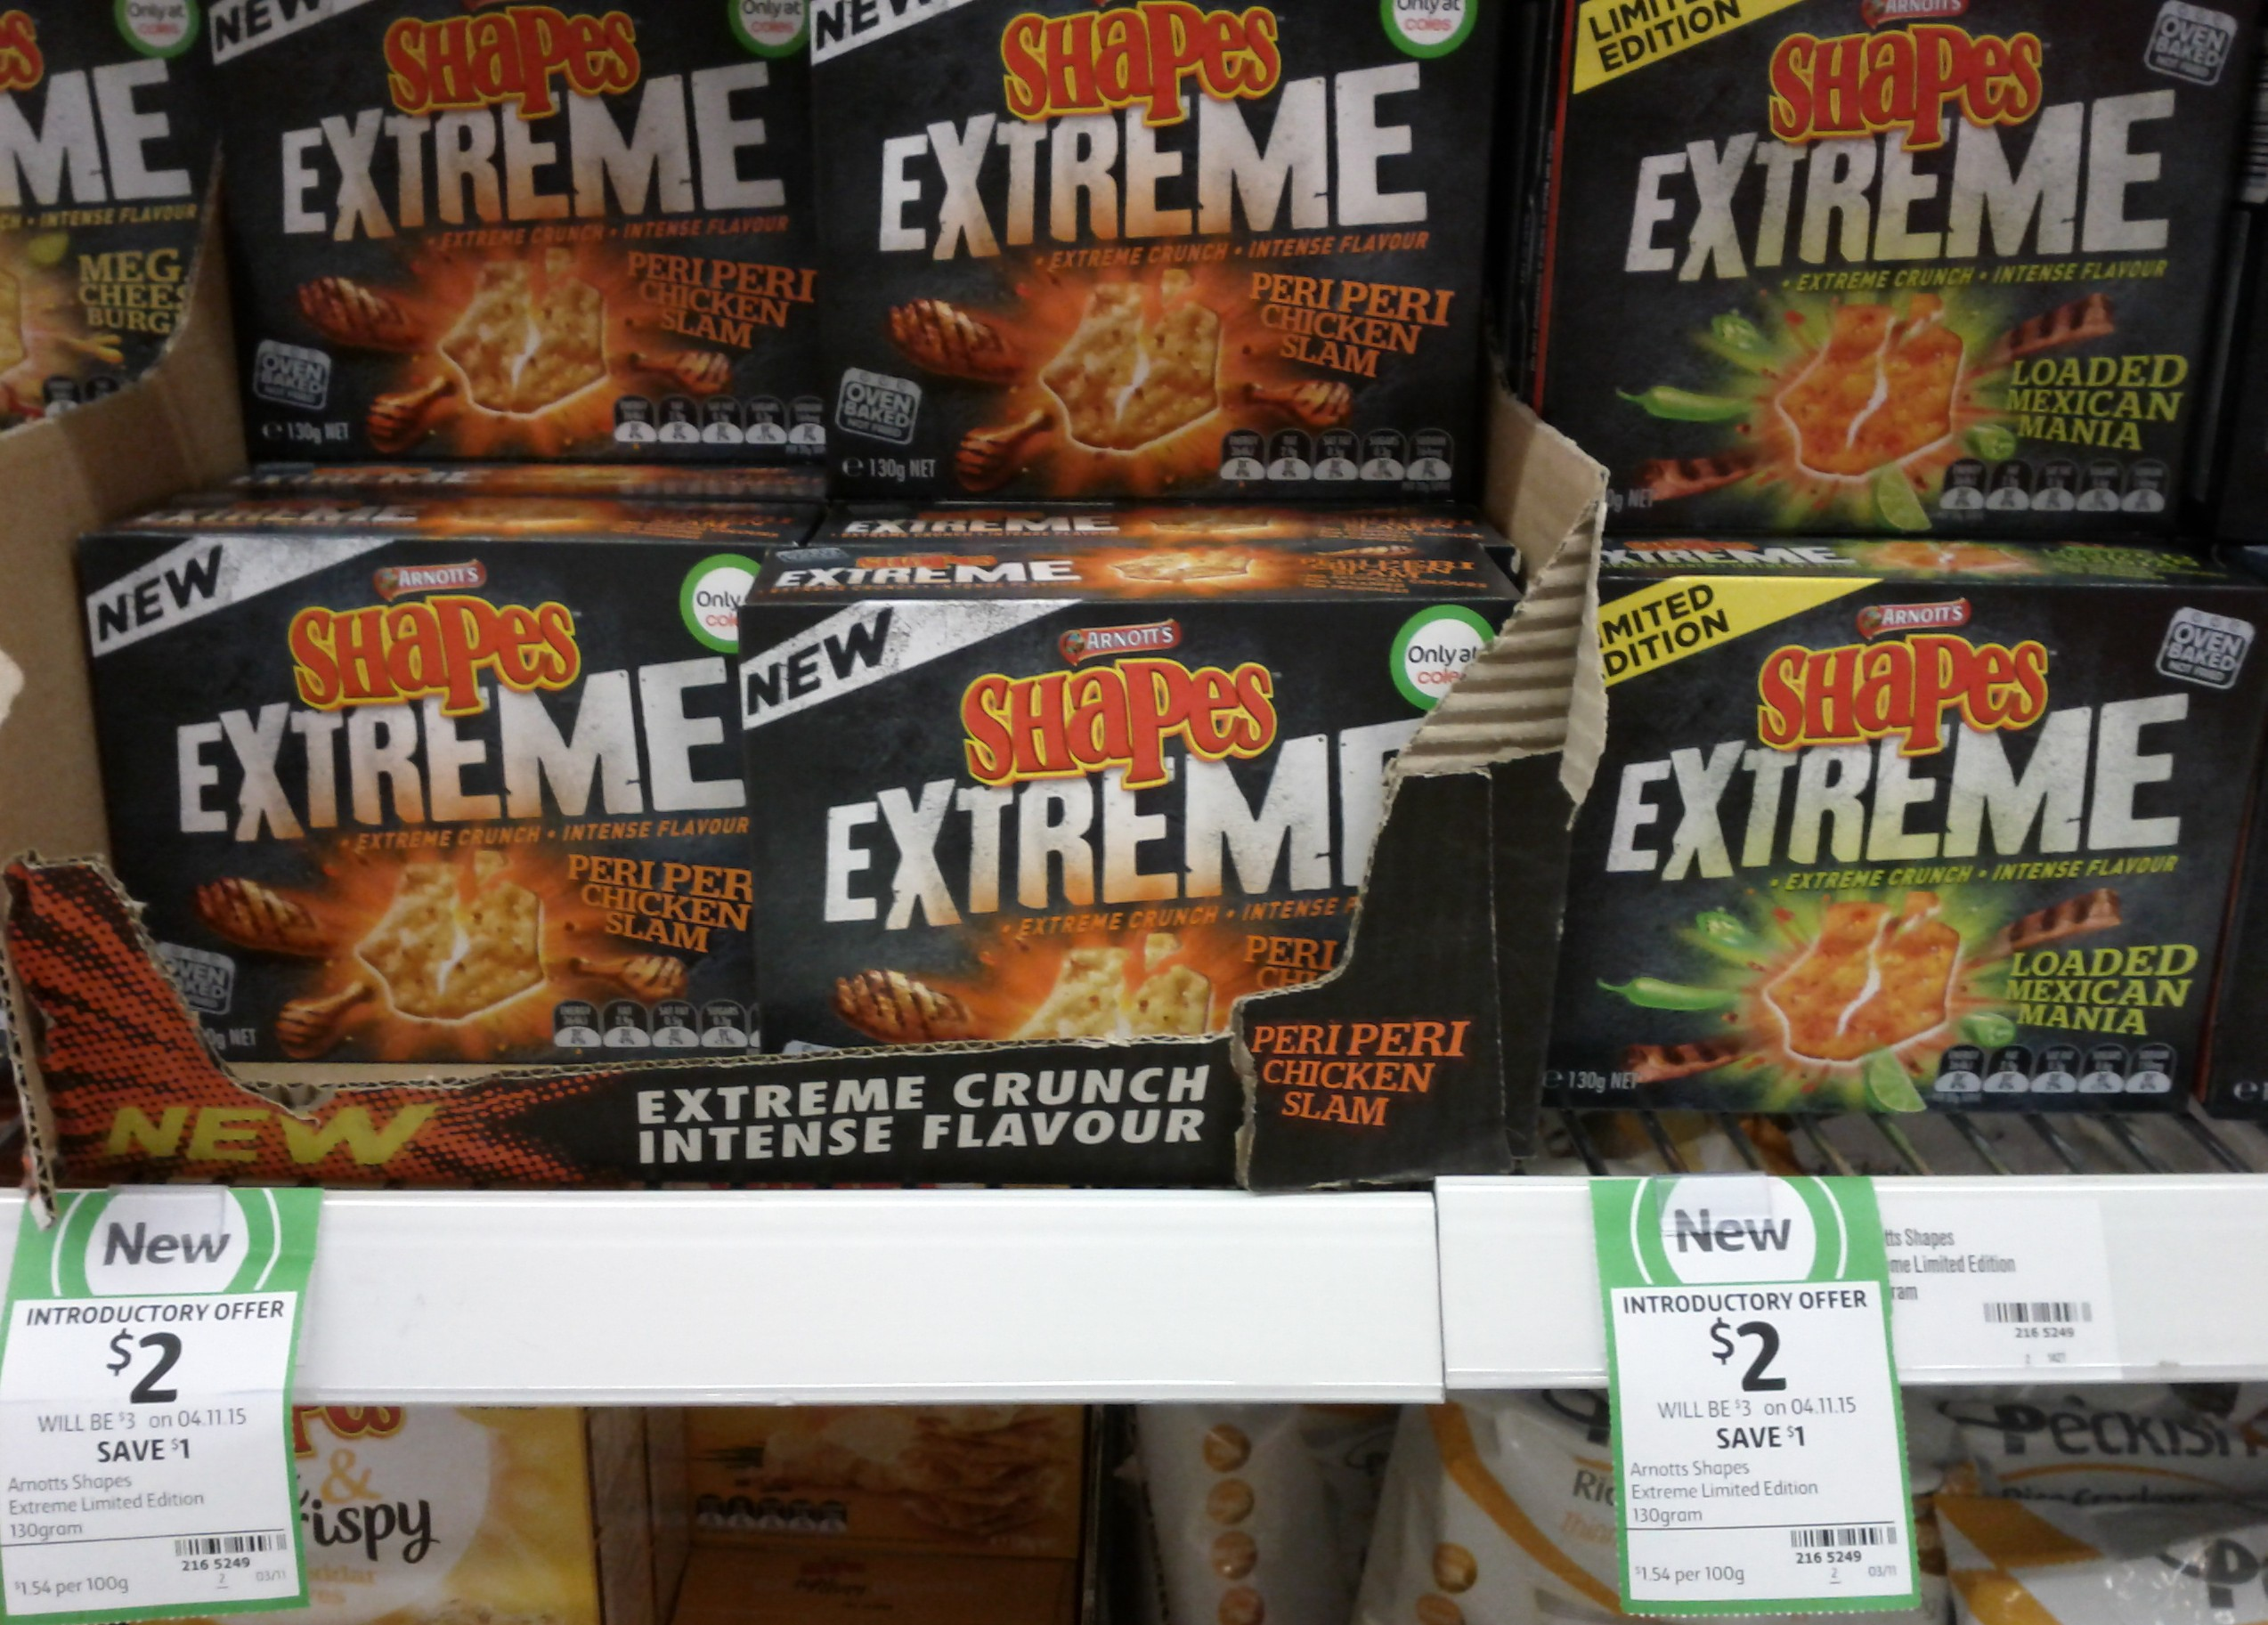 Arnotts Shapes 130g Extreme Peri Peri Chicken Slam, Loaded Mexican Mania